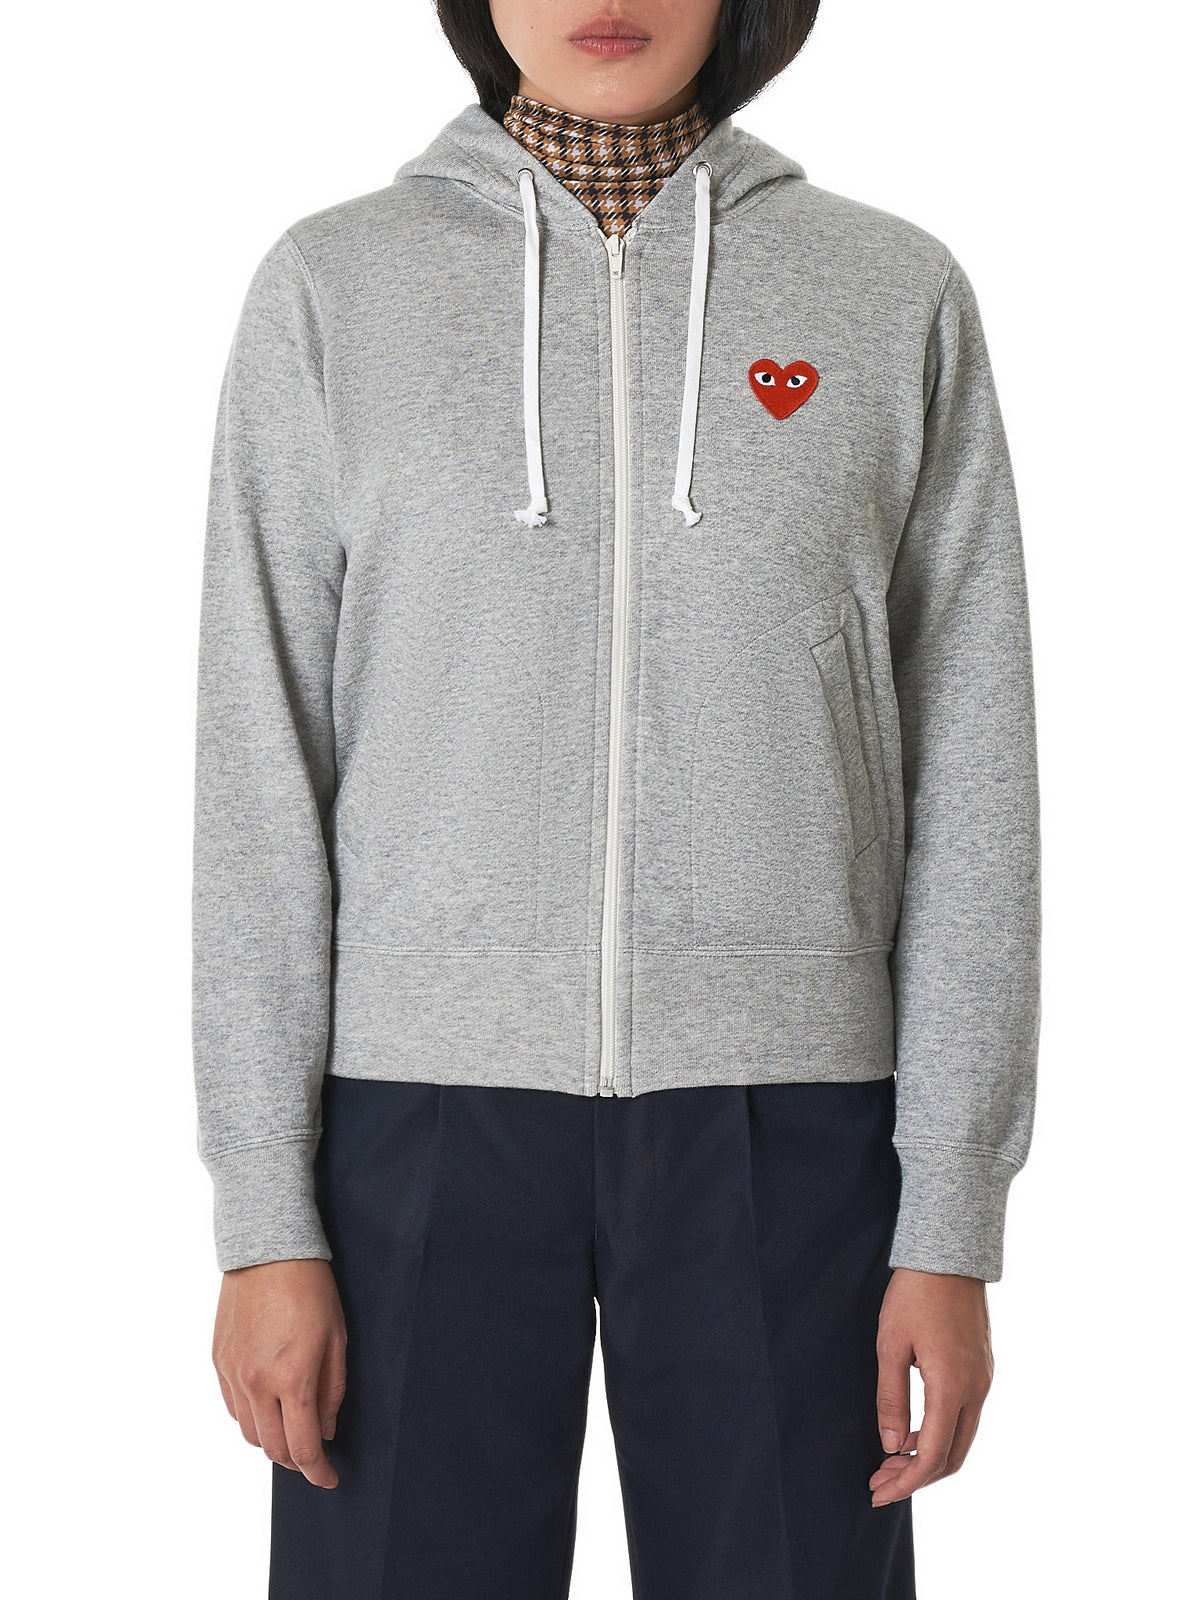 Logo Zip Jacket (P1T249--GREY)